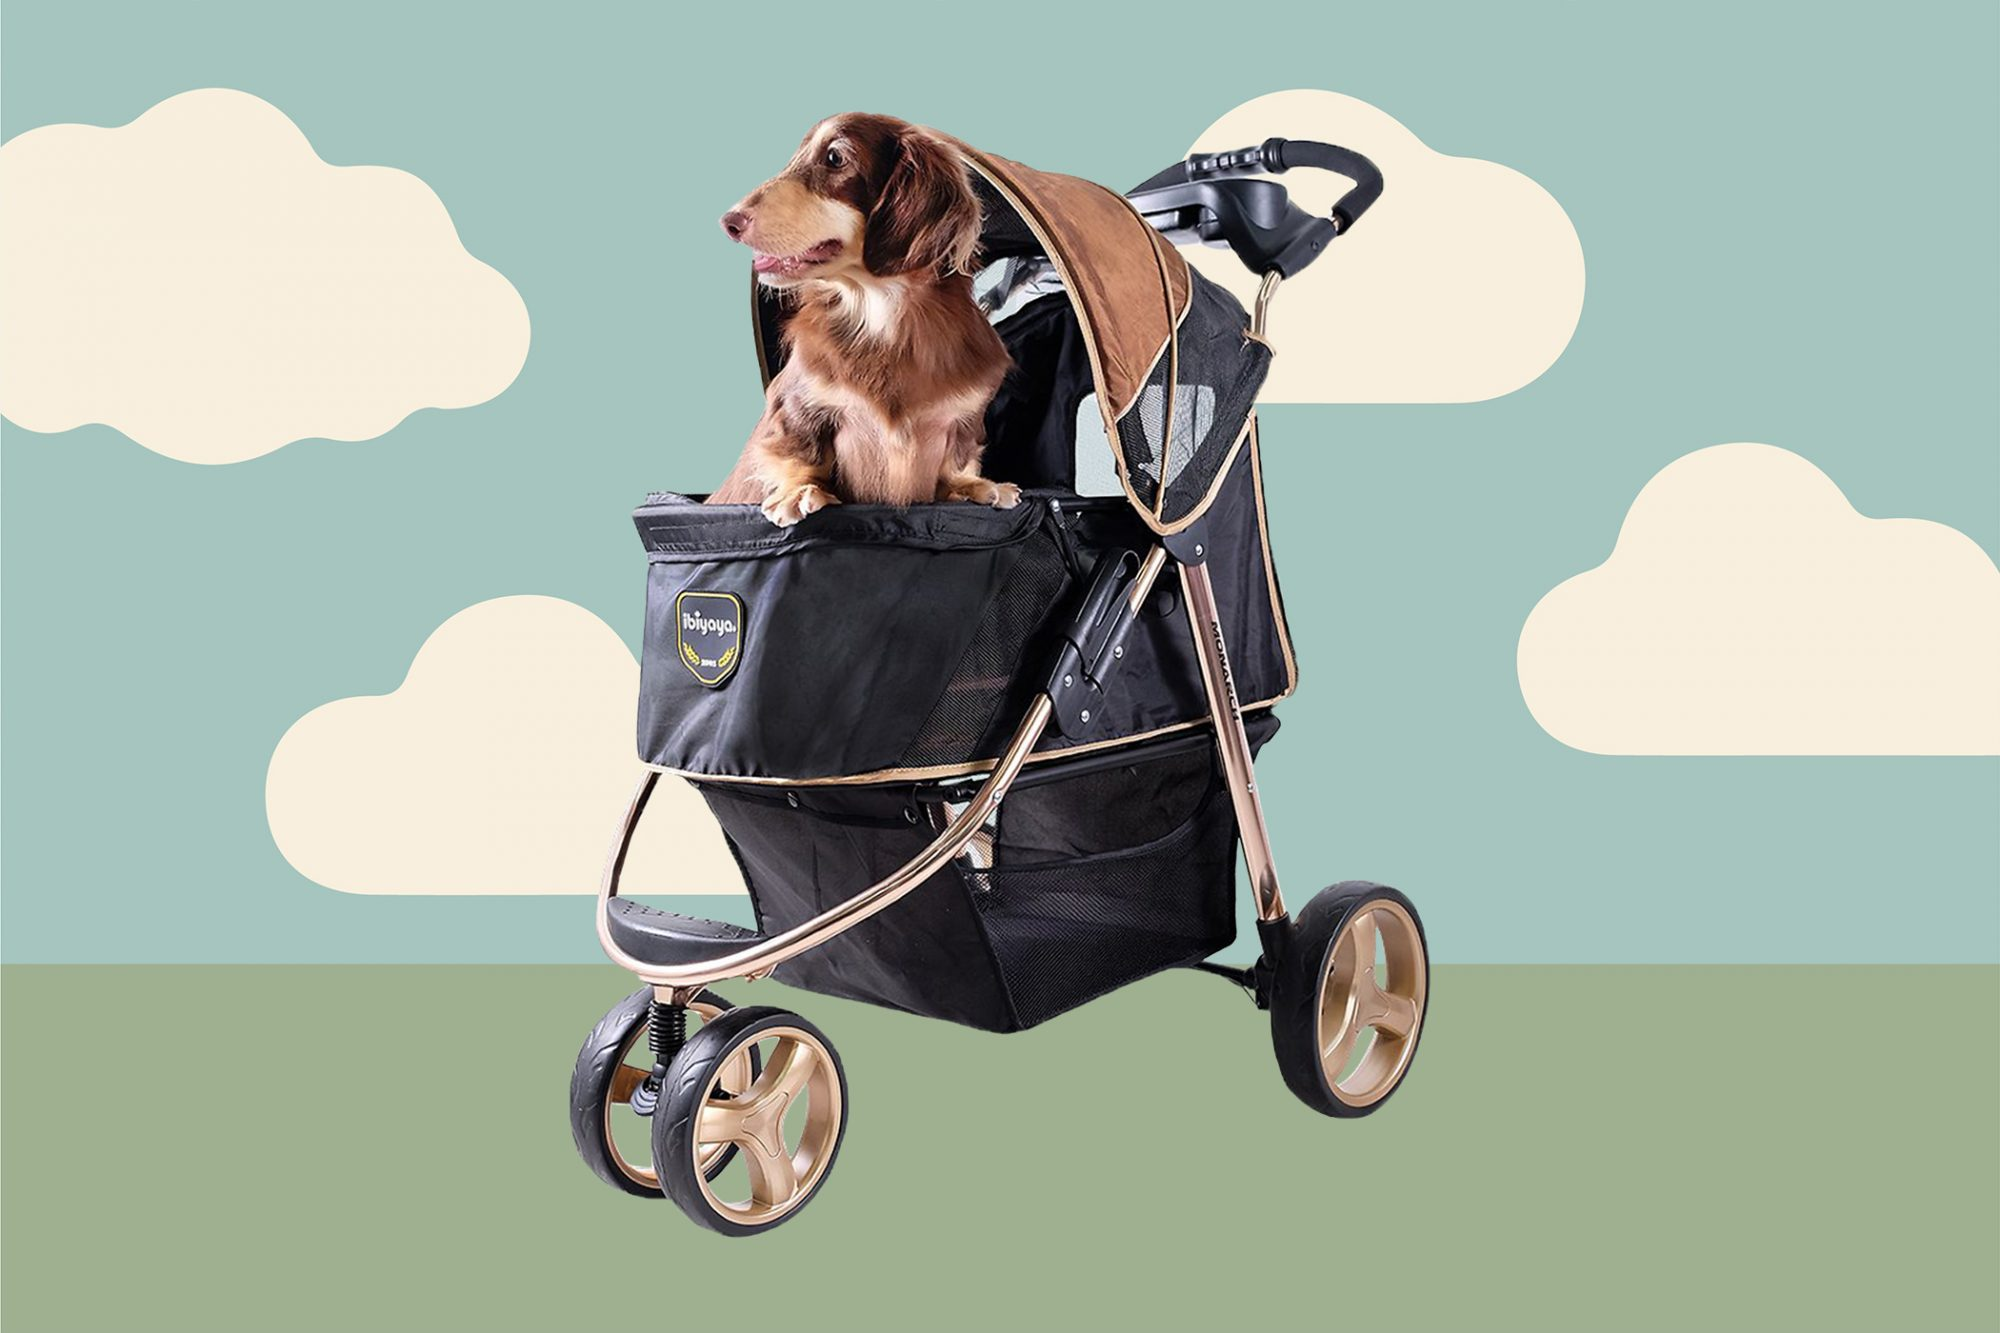 Medium-sized brown dog sits in black dolly stroller; cloud illustration in background